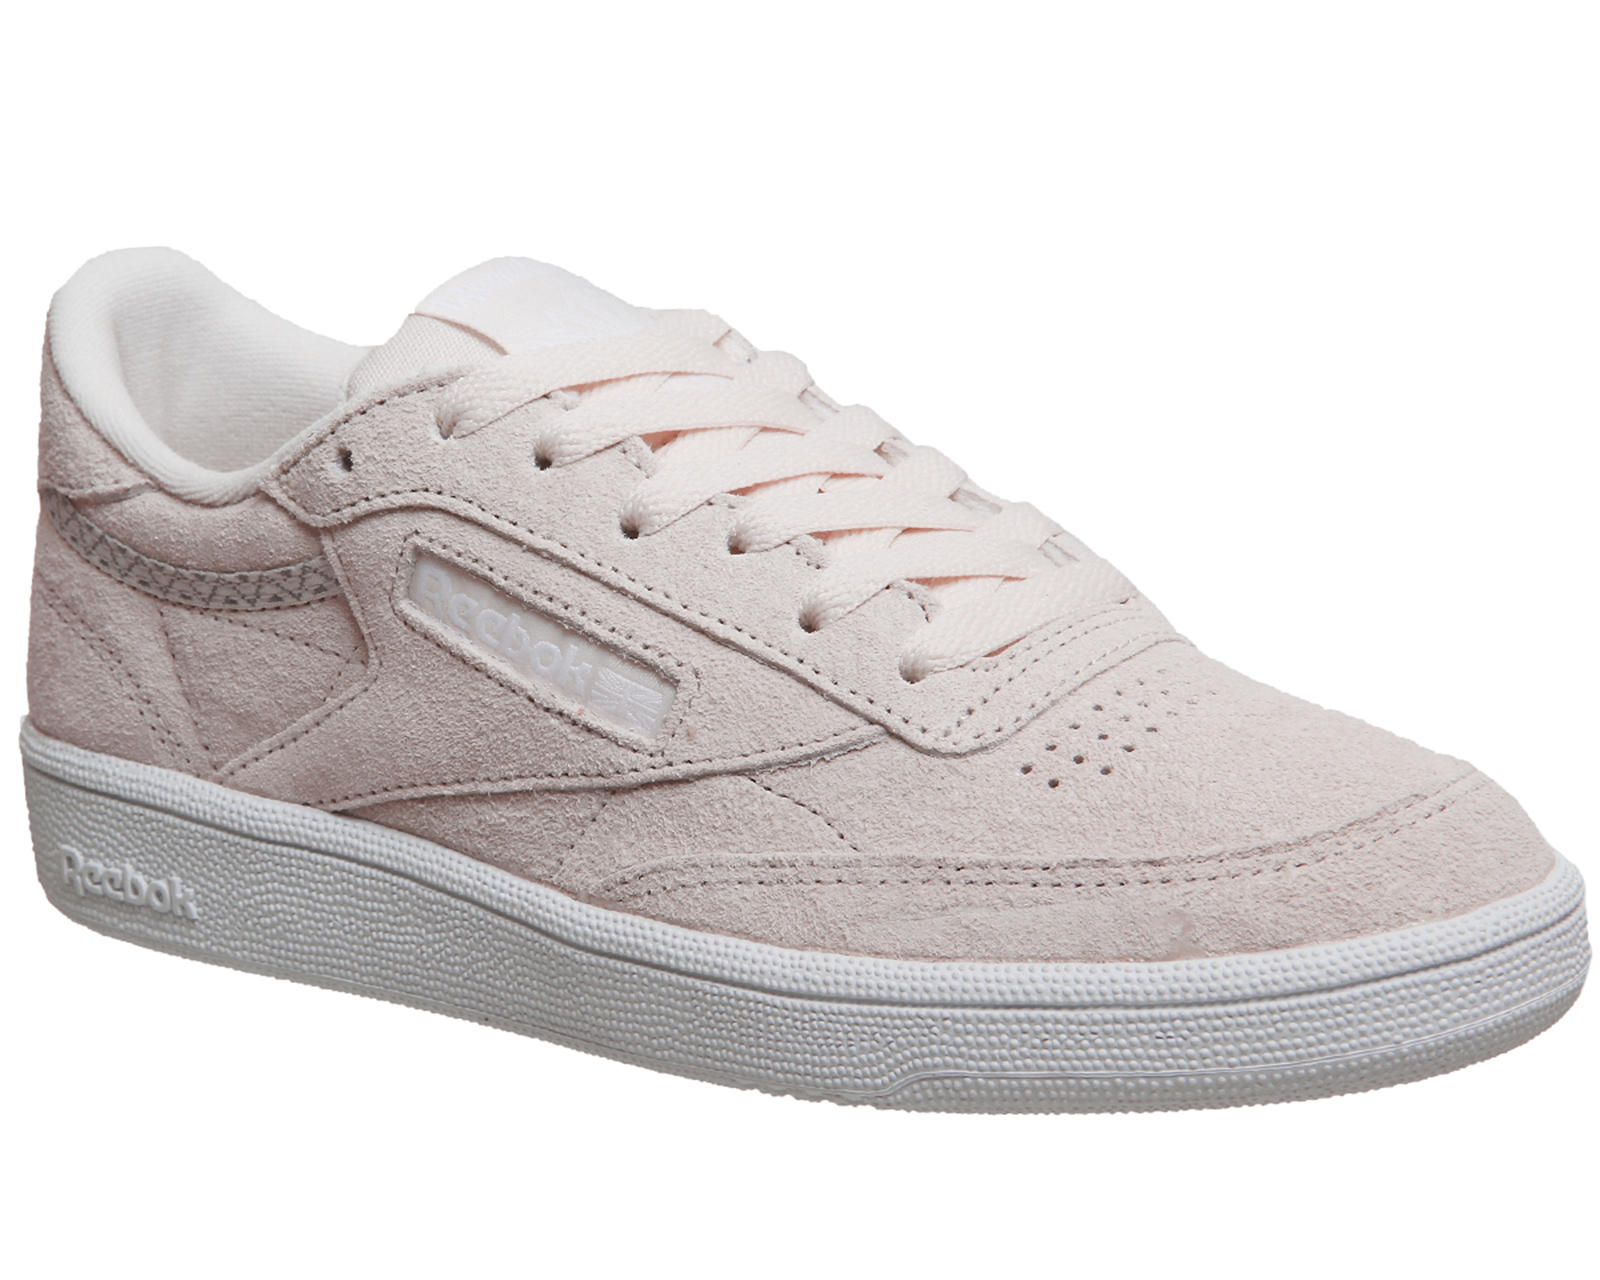 7336bef96b5ba Sentinel Womens Reebok Club C 85 PALE PINK WHITE TRIM Trainers Shoes